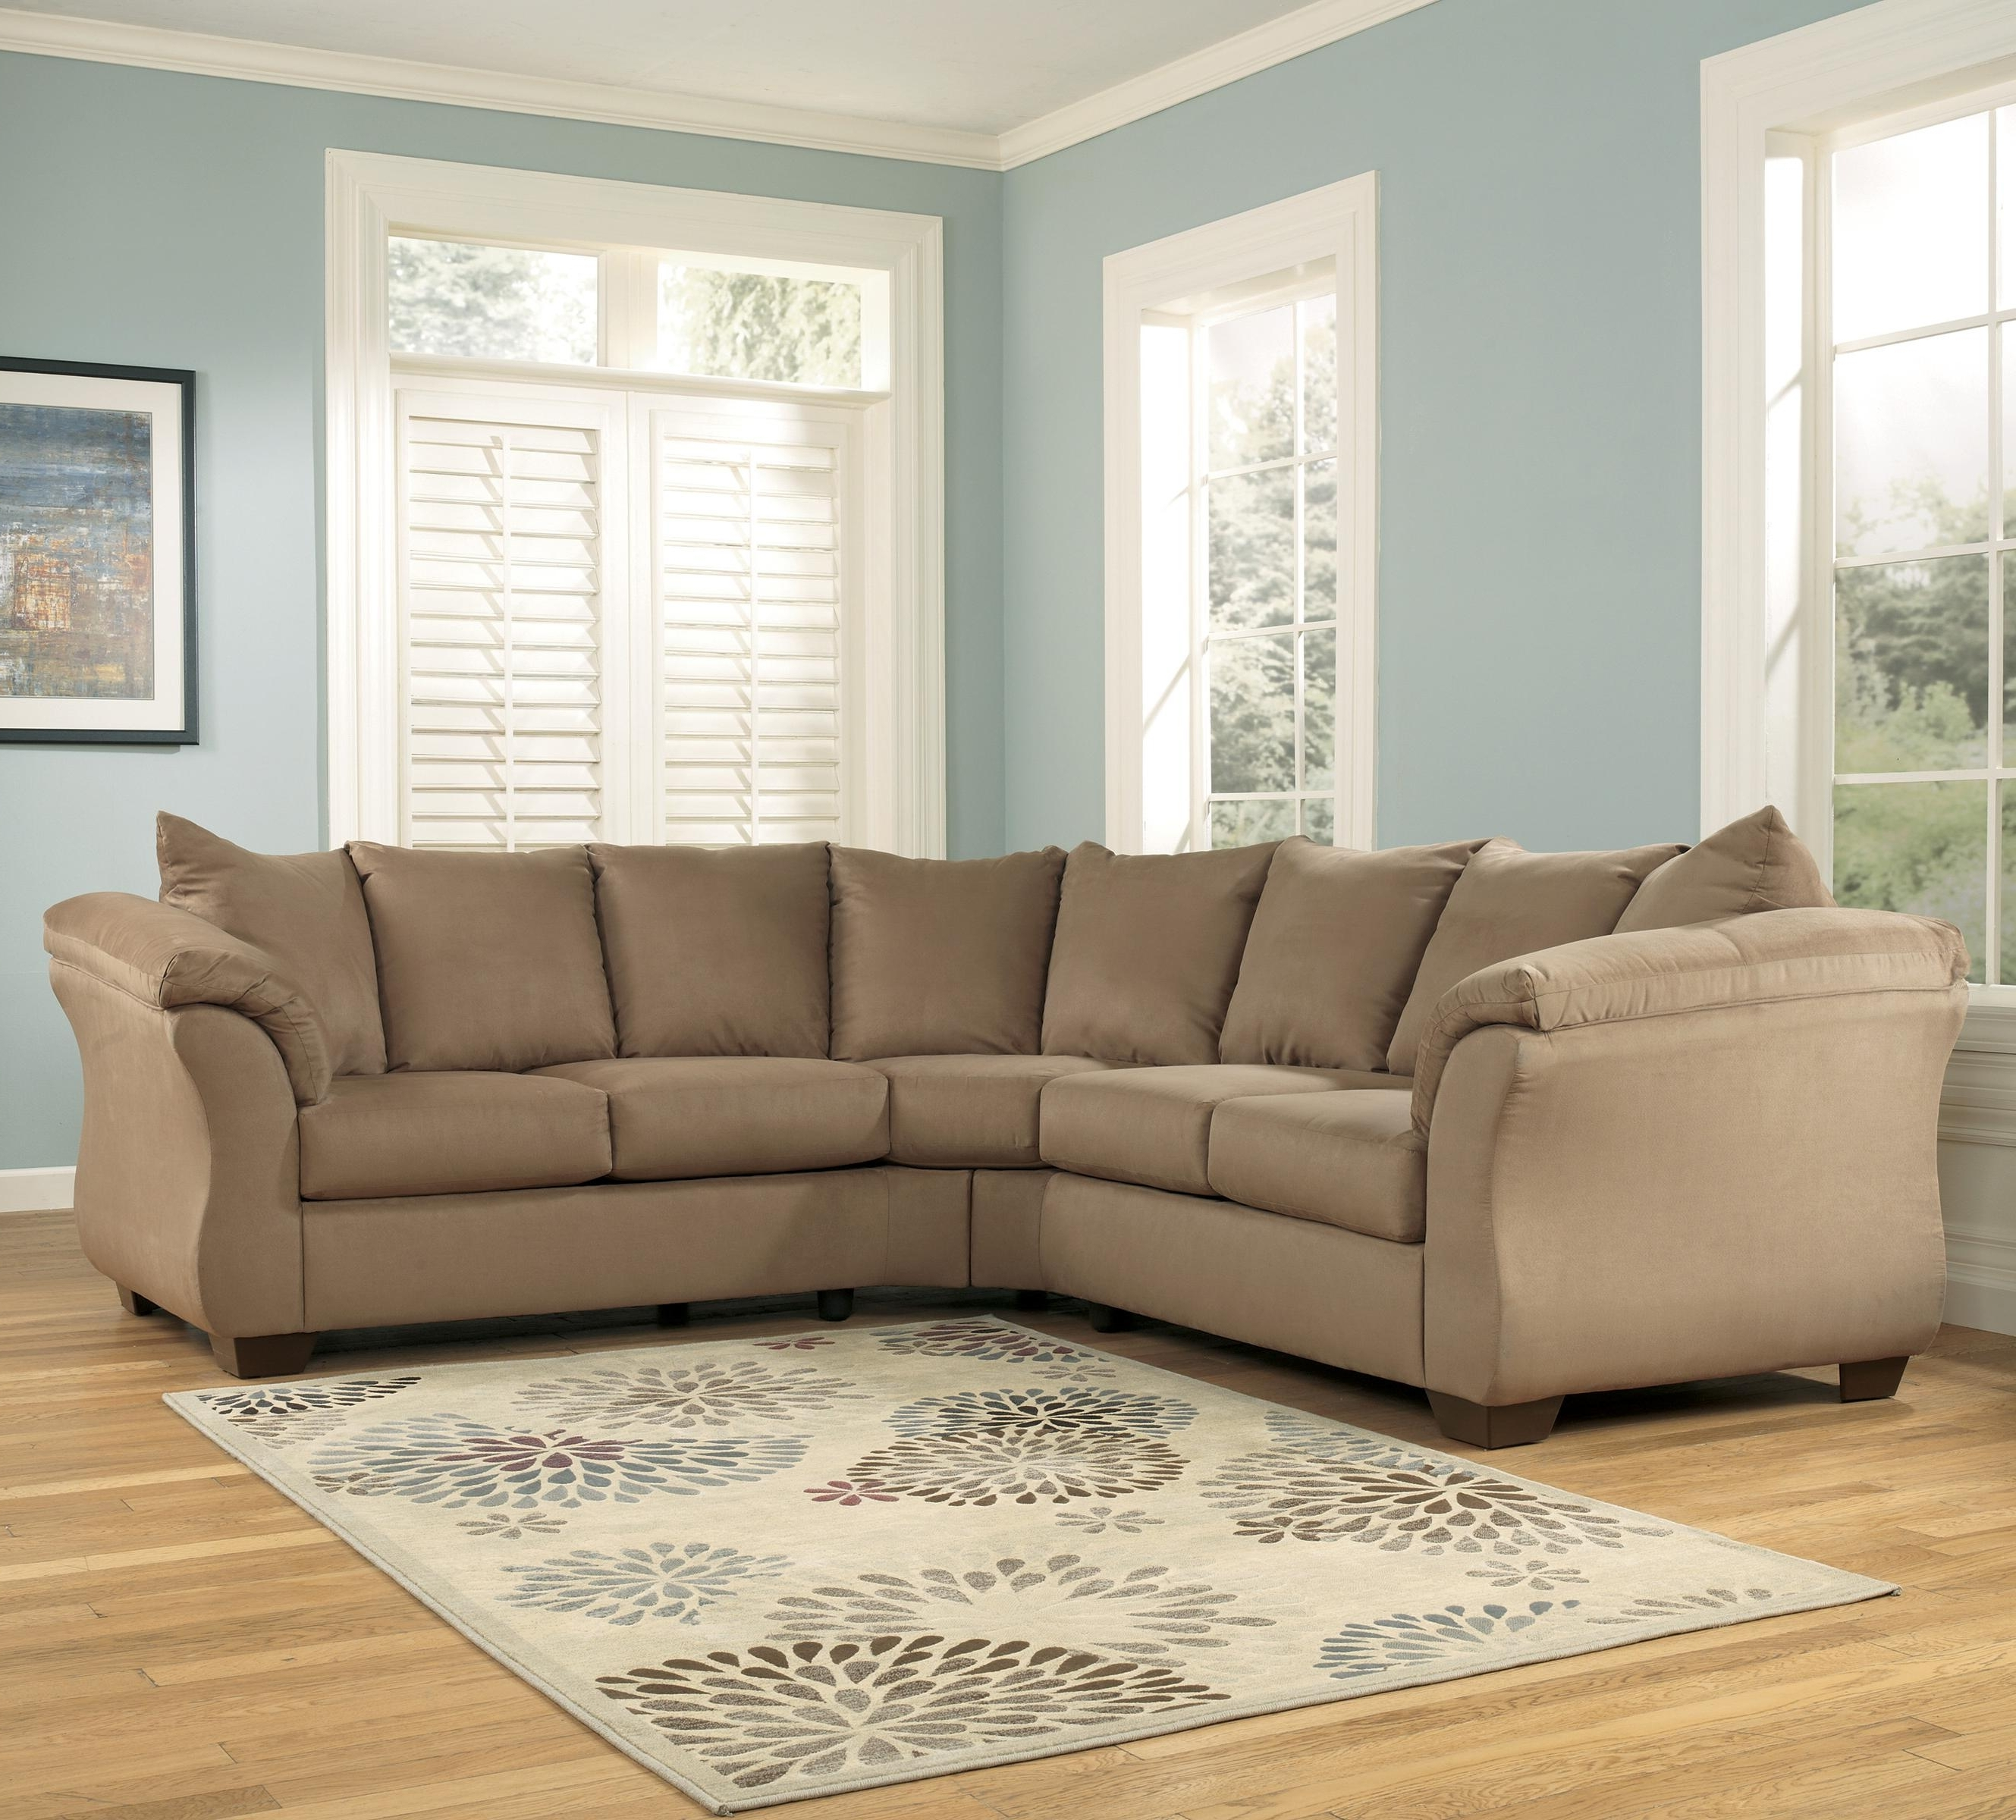 Most Popular 102x102 Sectional Sofas Pertaining To Signature Designashley Darcy – Mocha Contemporary Sectional (View 11 of 20)